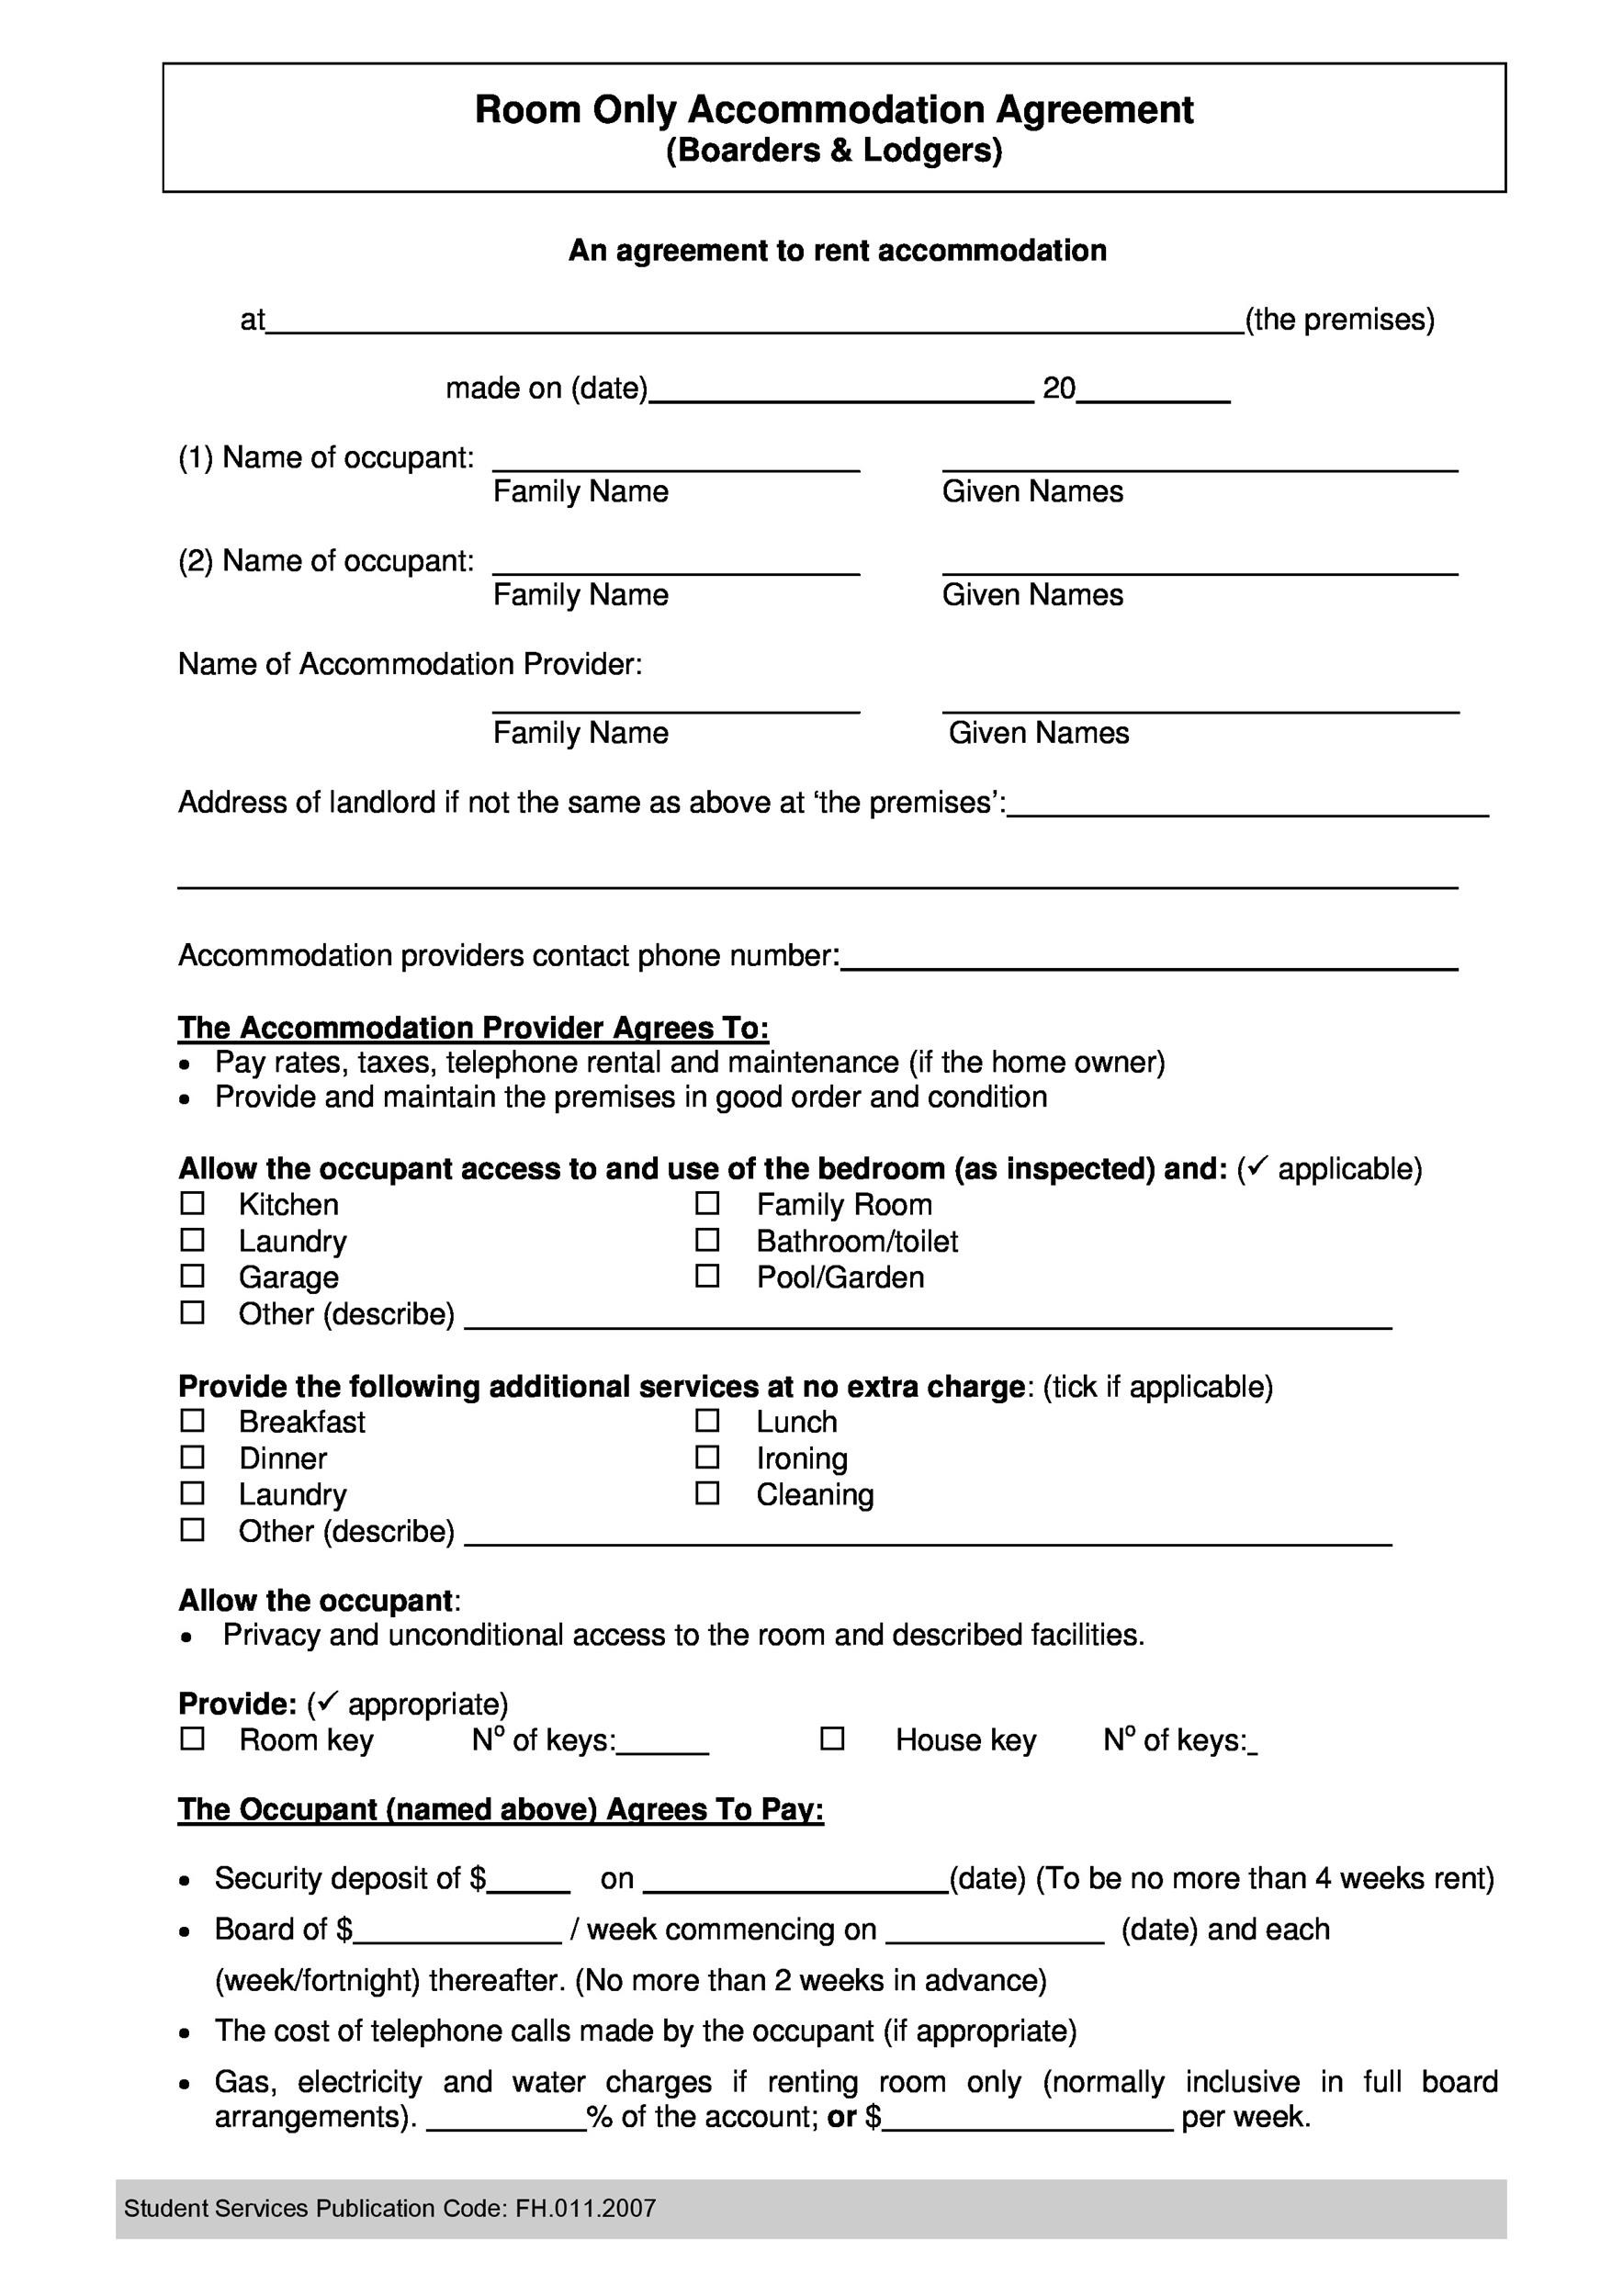 Free roommate agreement template 01